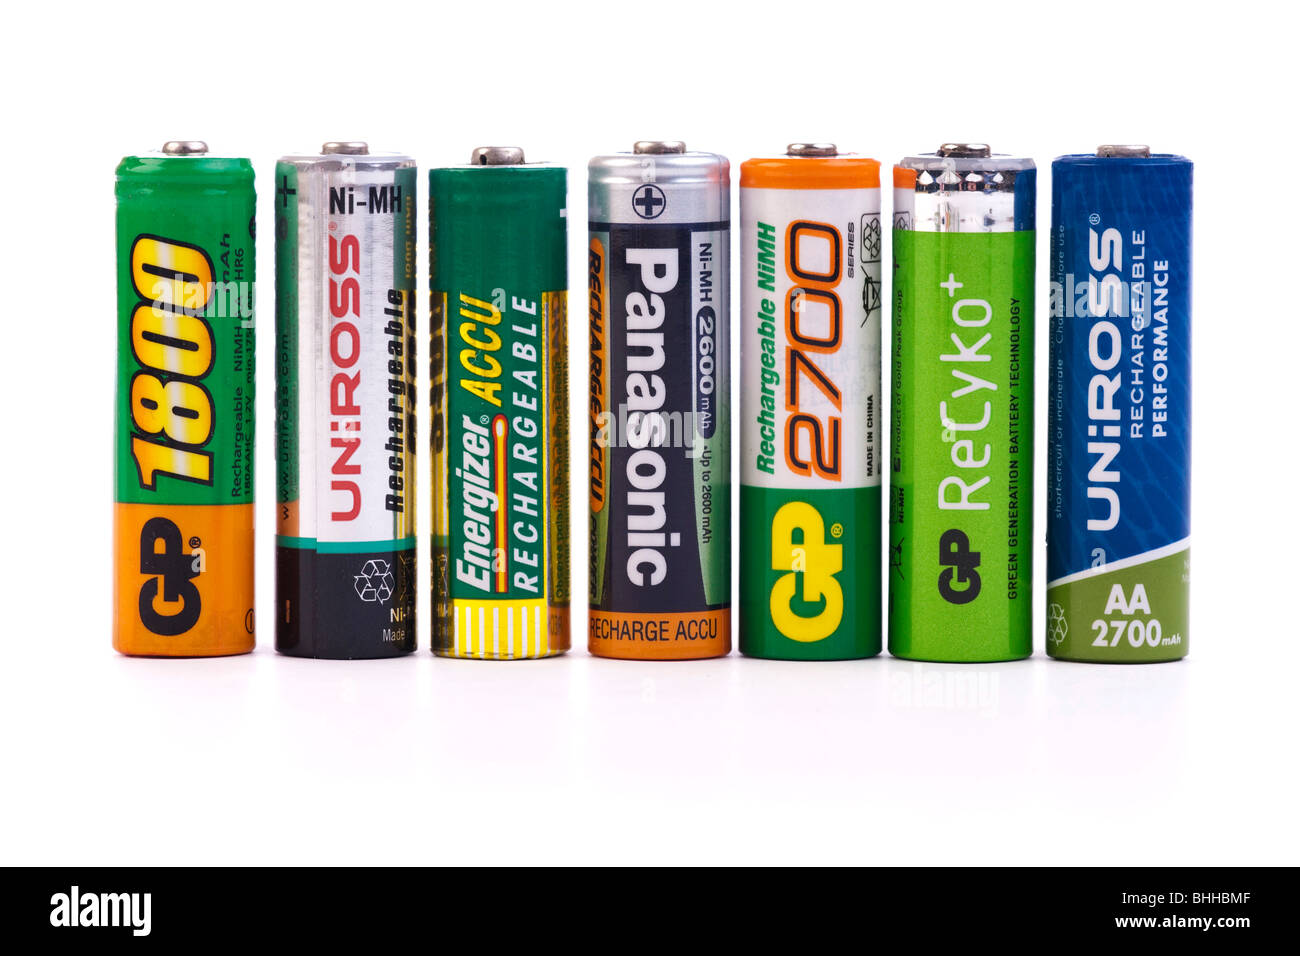 various nickel metal hydride NiMh rechargeable 1.5 volt batteries (cells) Stock Photo